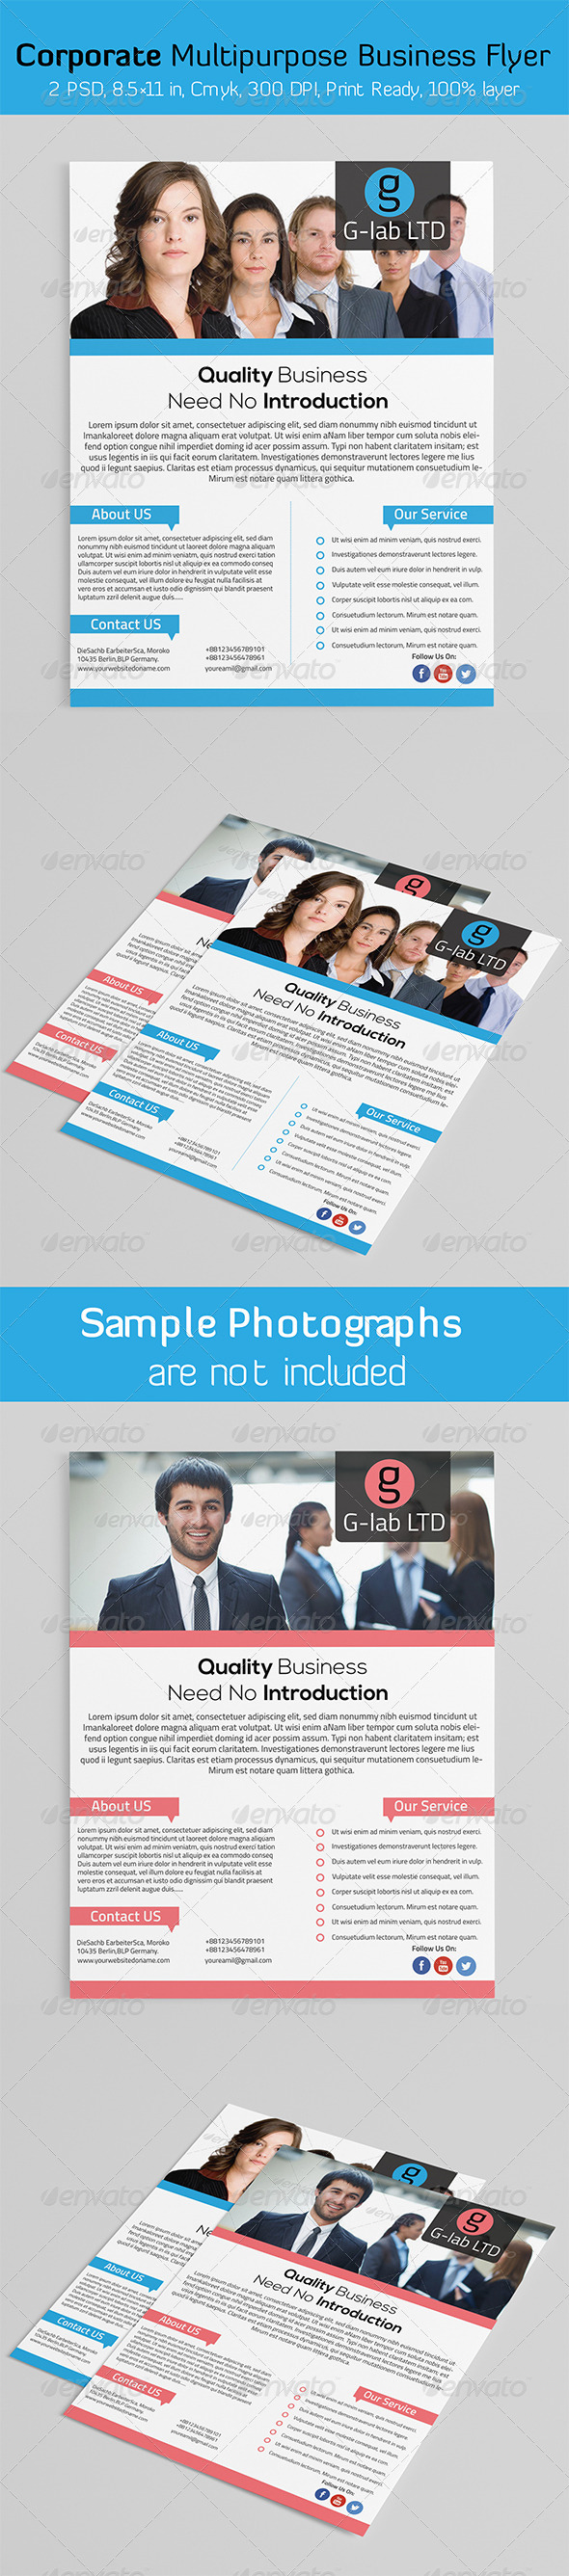 GraphicRiver Corporate Multipurpose Business Flyer 6070496